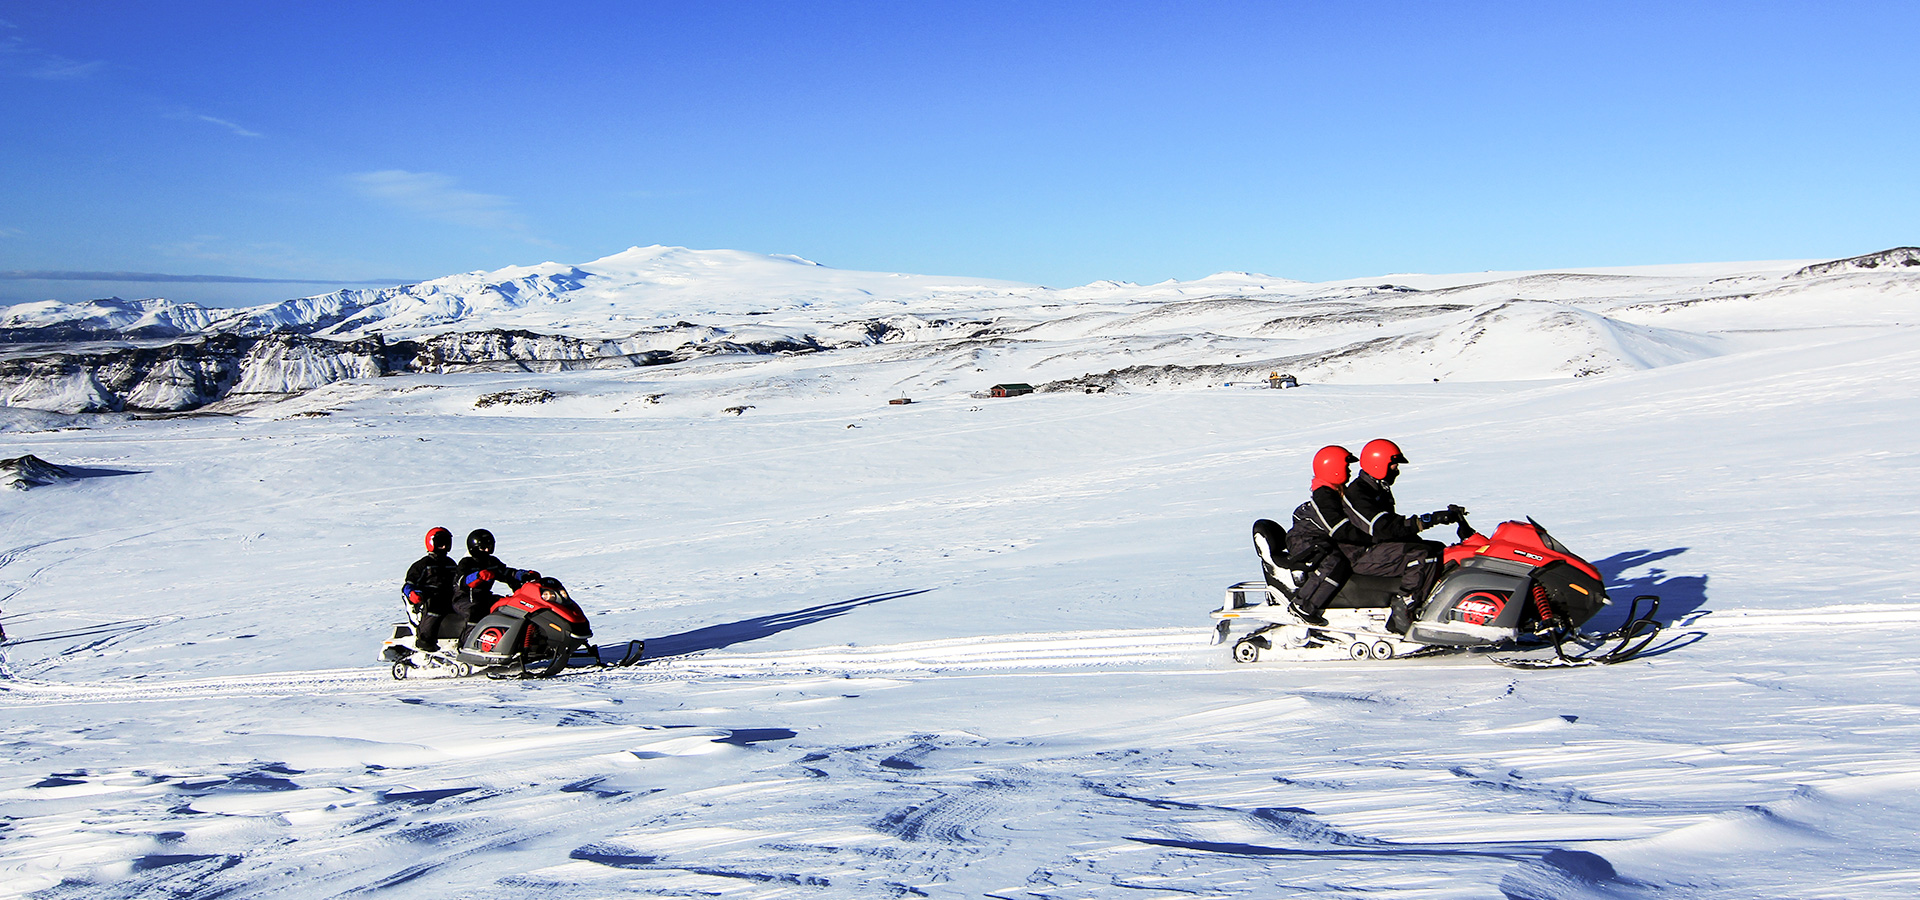 Snowmobiling tours require two riders per vehicle while zipping across Mýrdalsjökull Glacier.